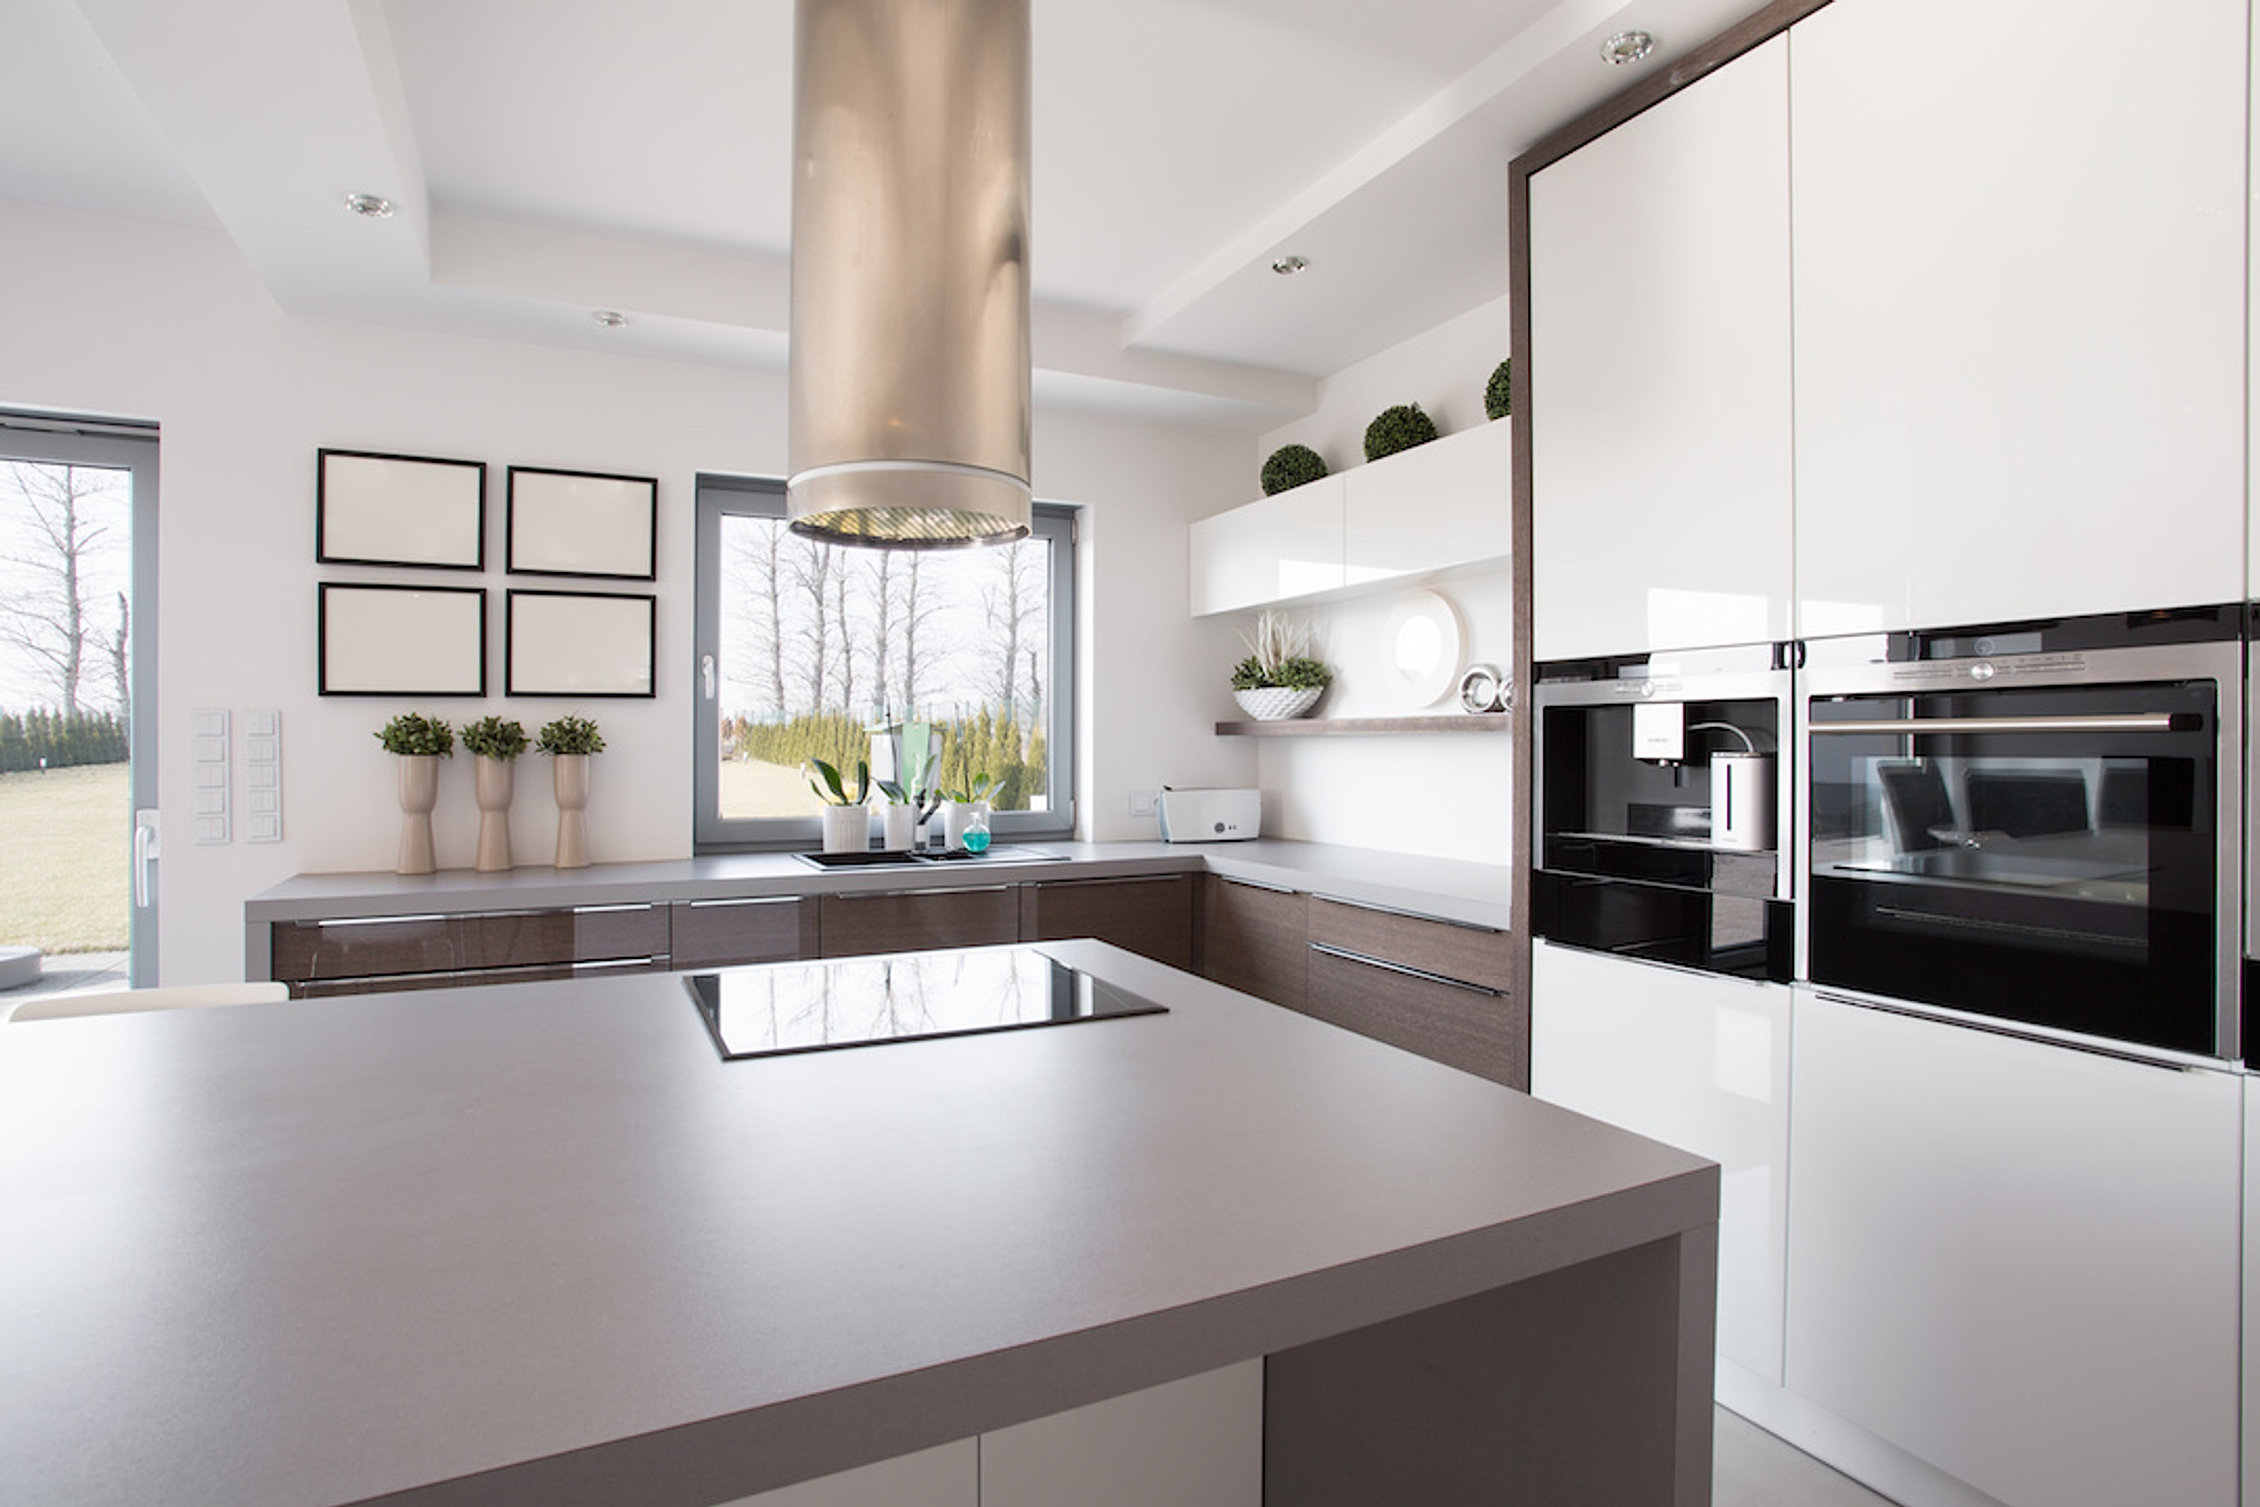 Kitchen design build kitchen design build modern minimalist kitchen by mimo home interior